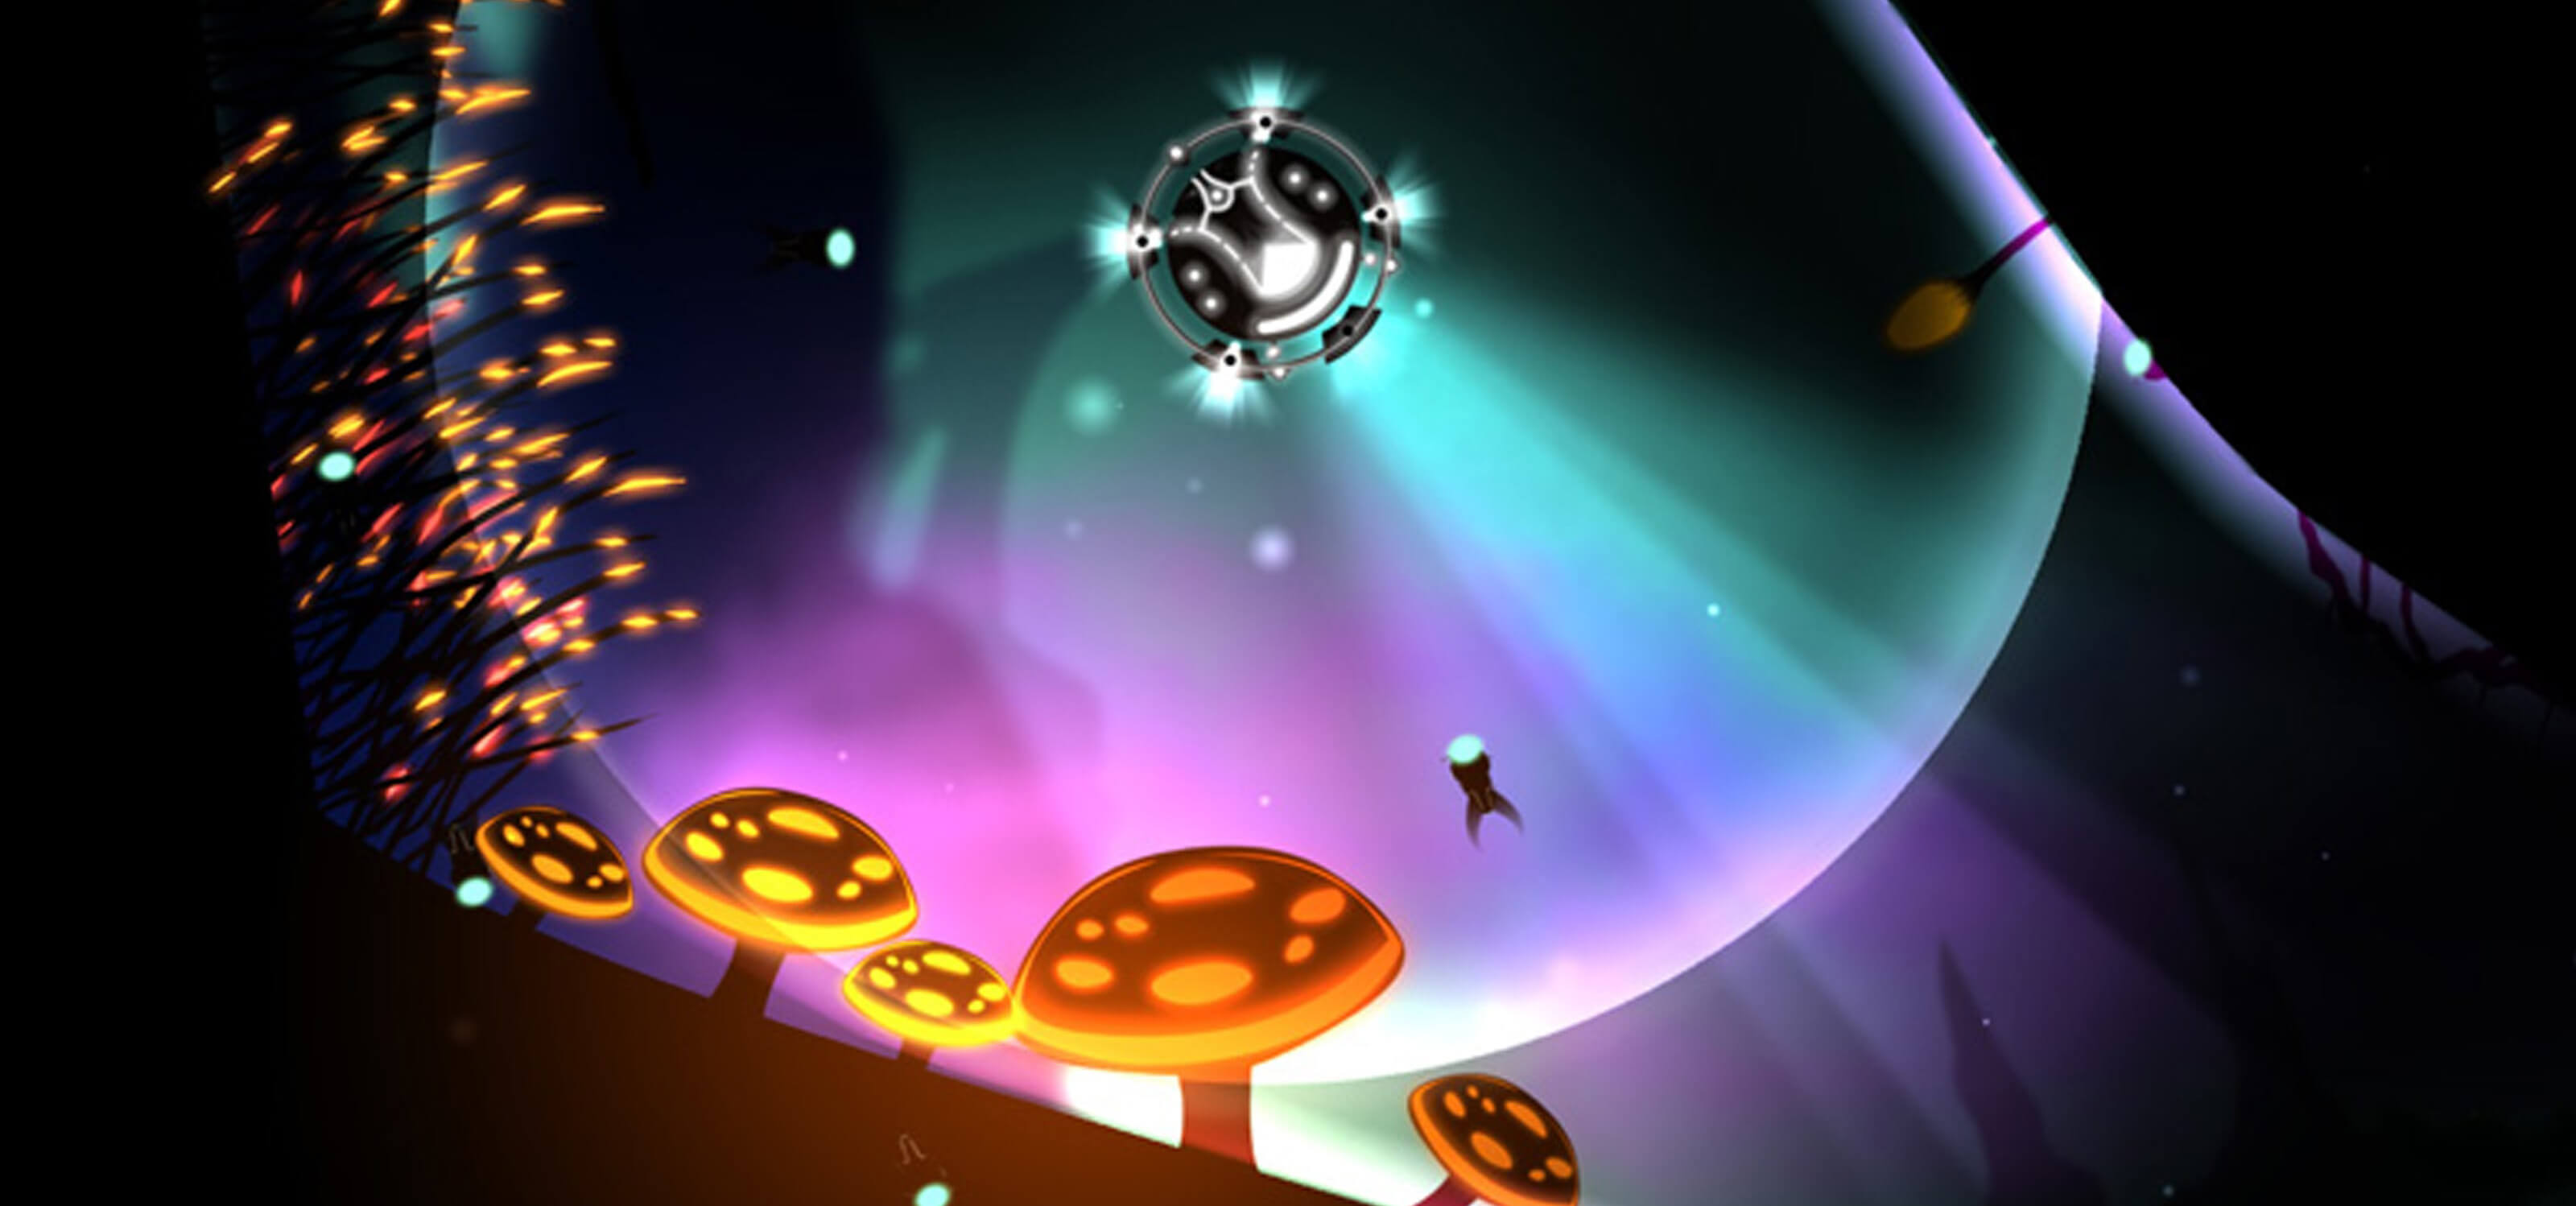 Screenshot from DigiPen student game SubRay of a vessel drifting through an underwater landscape filled with vegetation